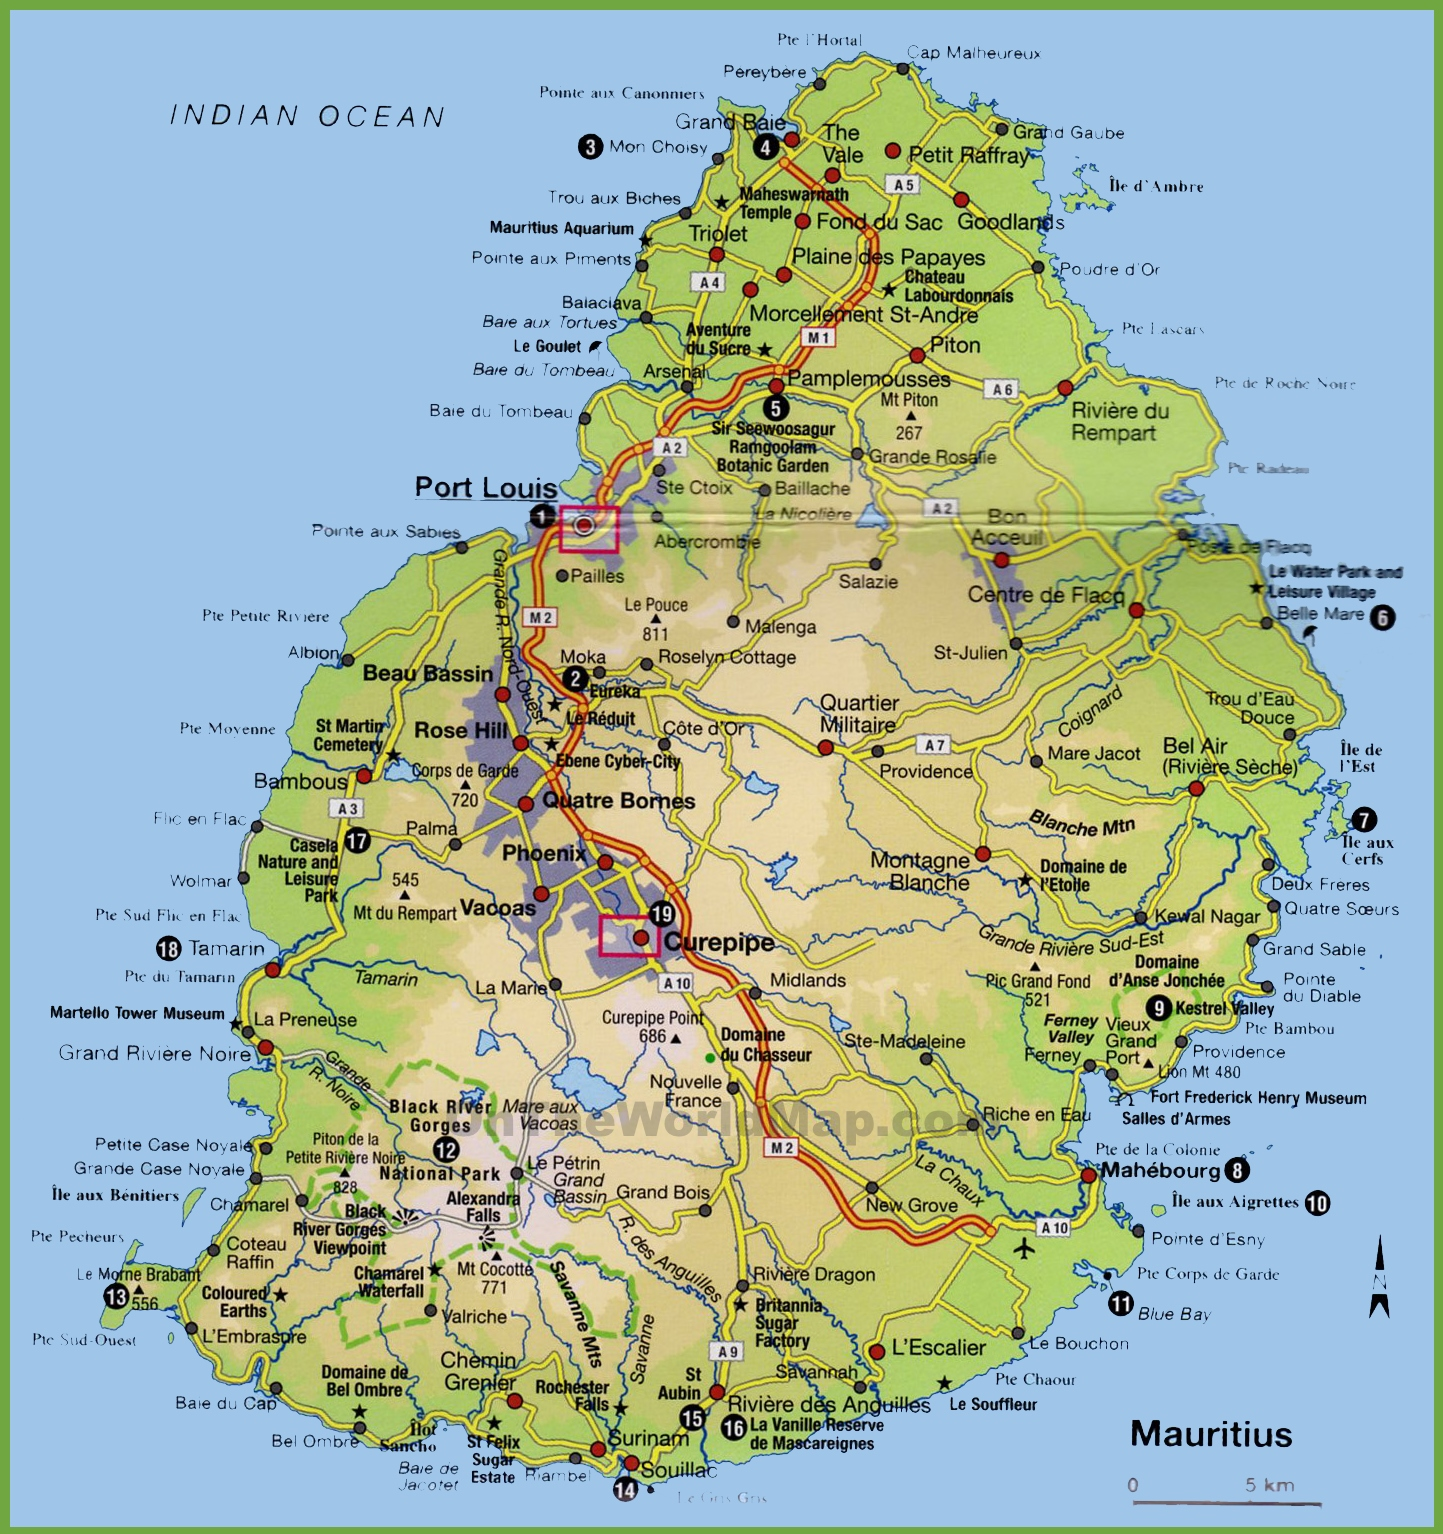 Mauritius Tourist Map - Mauritius map in world map